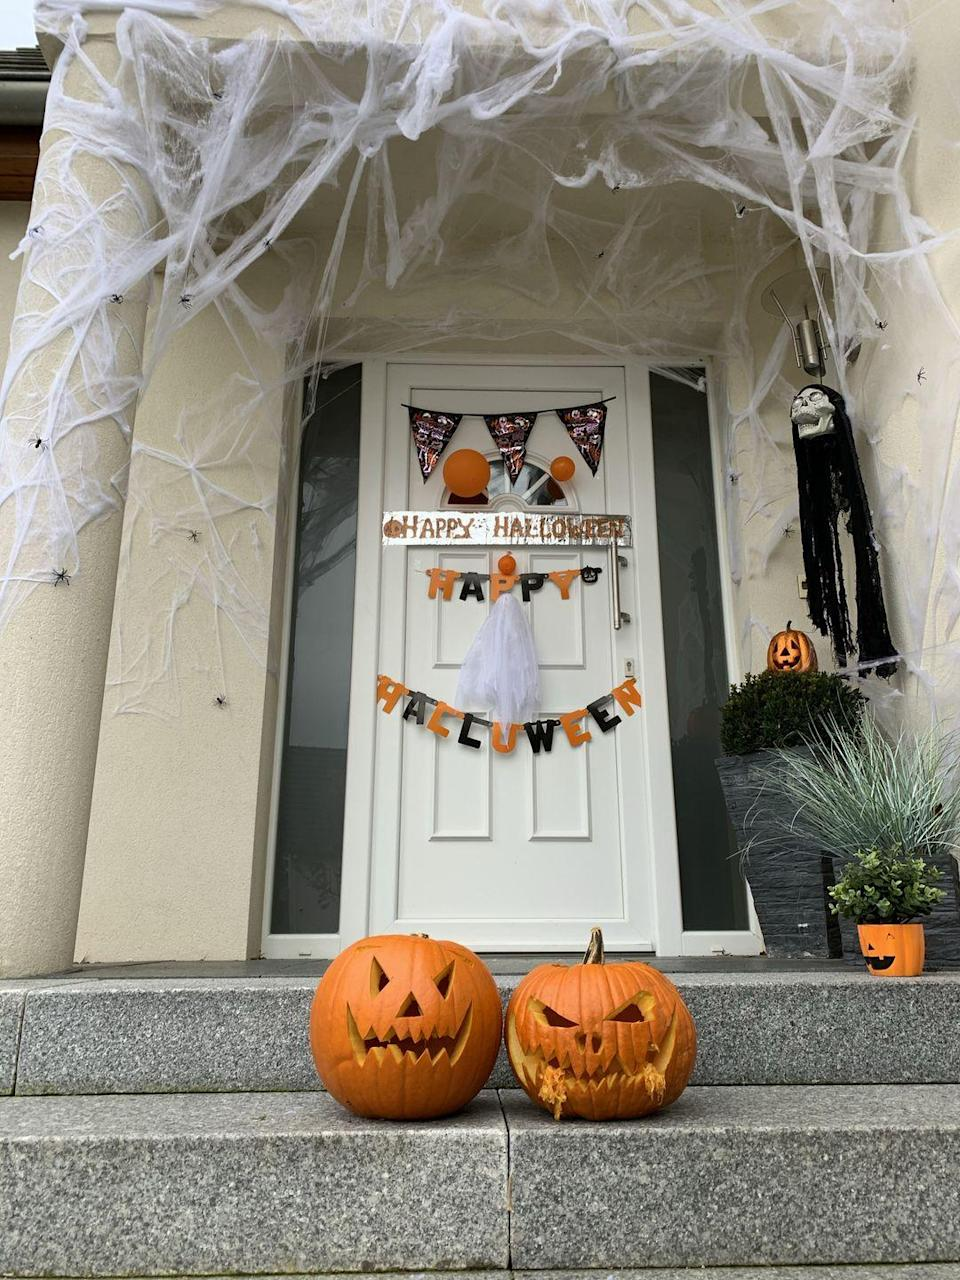 """<p>Let a variety of colorful Halloween banners add a playful touch to your entryway. Take the look to the next level by adding scary jack-o-lanterns to the mix.</p><p><a class=""""link rapid-noclick-resp"""" href=""""https://go.redirectingat.com?id=74968X1596630&url=https%3A%2F%2Fwww.etsy.com%2Flisting%2F545133504%2Fhappy-halloween-glitter-banner&sref=https%3A%2F%2Fwww.goodhousekeeping.com%2Fholidays%2Fhalloween-ideas%2Fg32948621%2Fhalloween-door-decorations%2F"""" rel=""""nofollow noopener"""" target=""""_blank"""" data-ylk=""""slk:SHOP HAPPY HALLOWEEN BANNER"""">SHOP HAPPY HALLOWEEN BANNER</a></p>"""